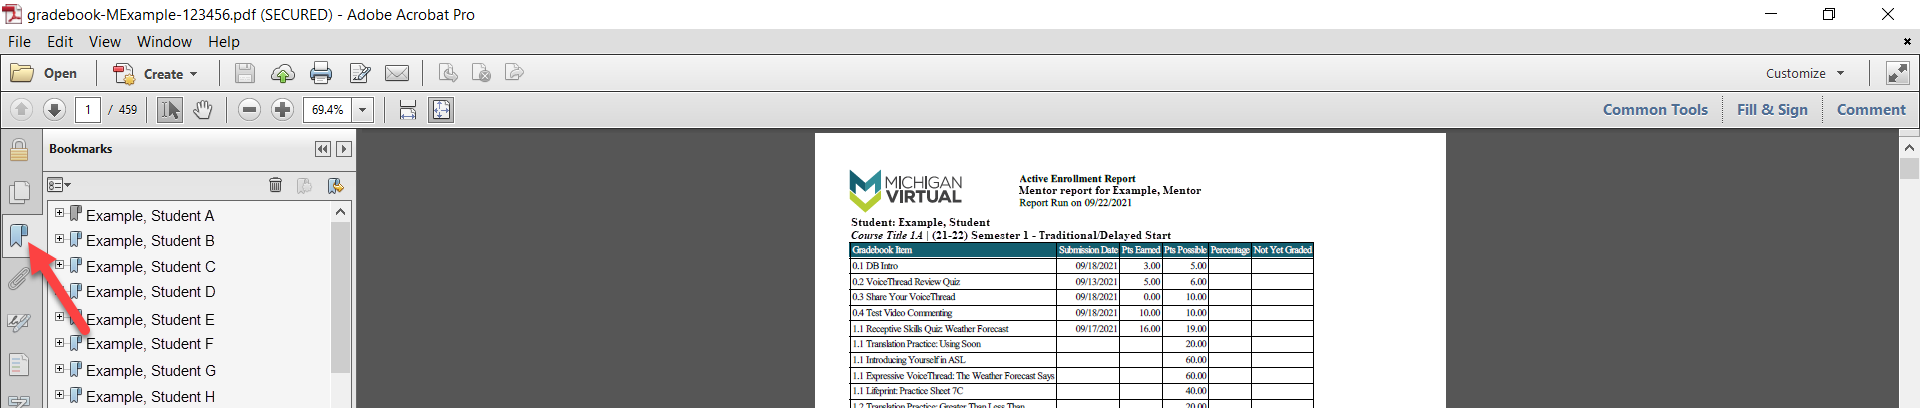 A downloaded PDF of the Mentor Gradebook report is shown. An arrow points to the Bookmark icon next to a list of the student example names.